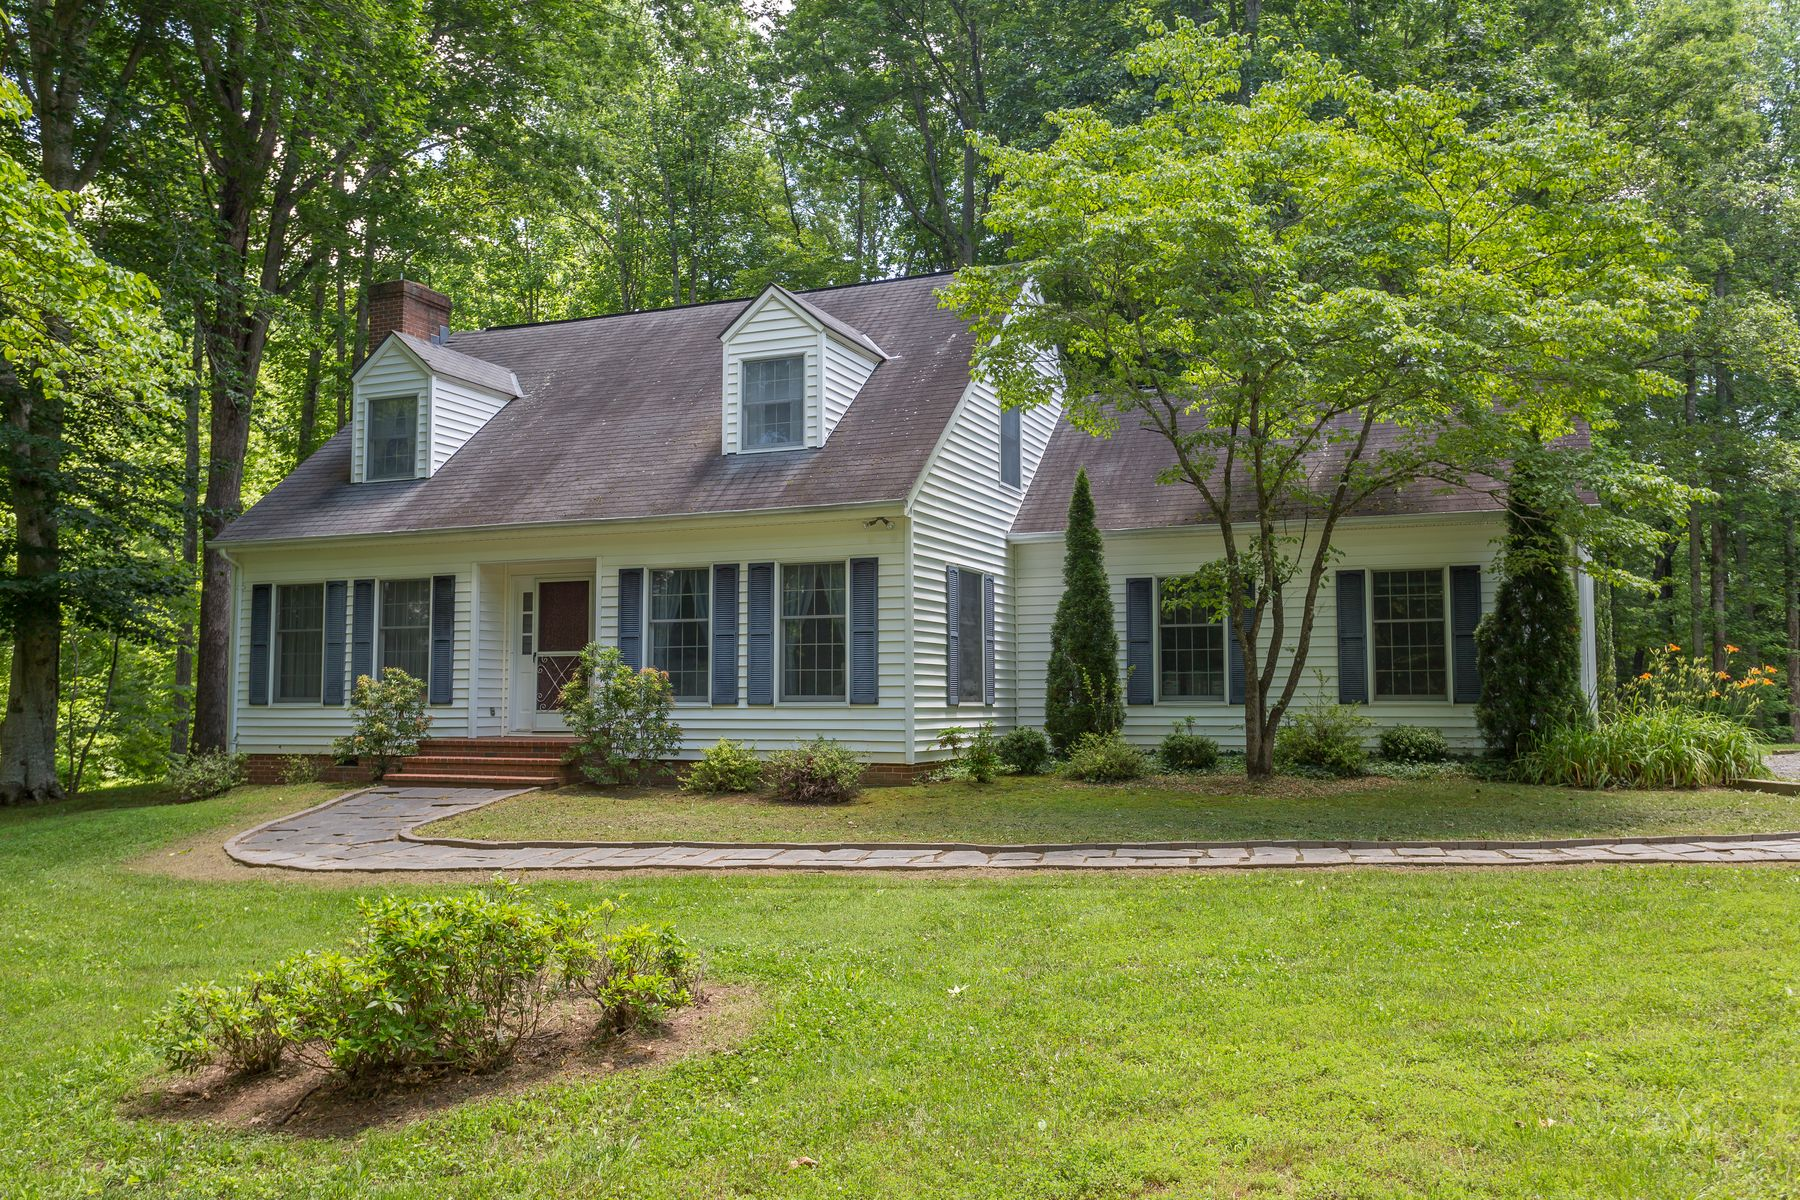 Additional photo for property listing at Gardner Farm 792 E OLD MOUNTAIN RD Mineral, Virginia 23117 United States